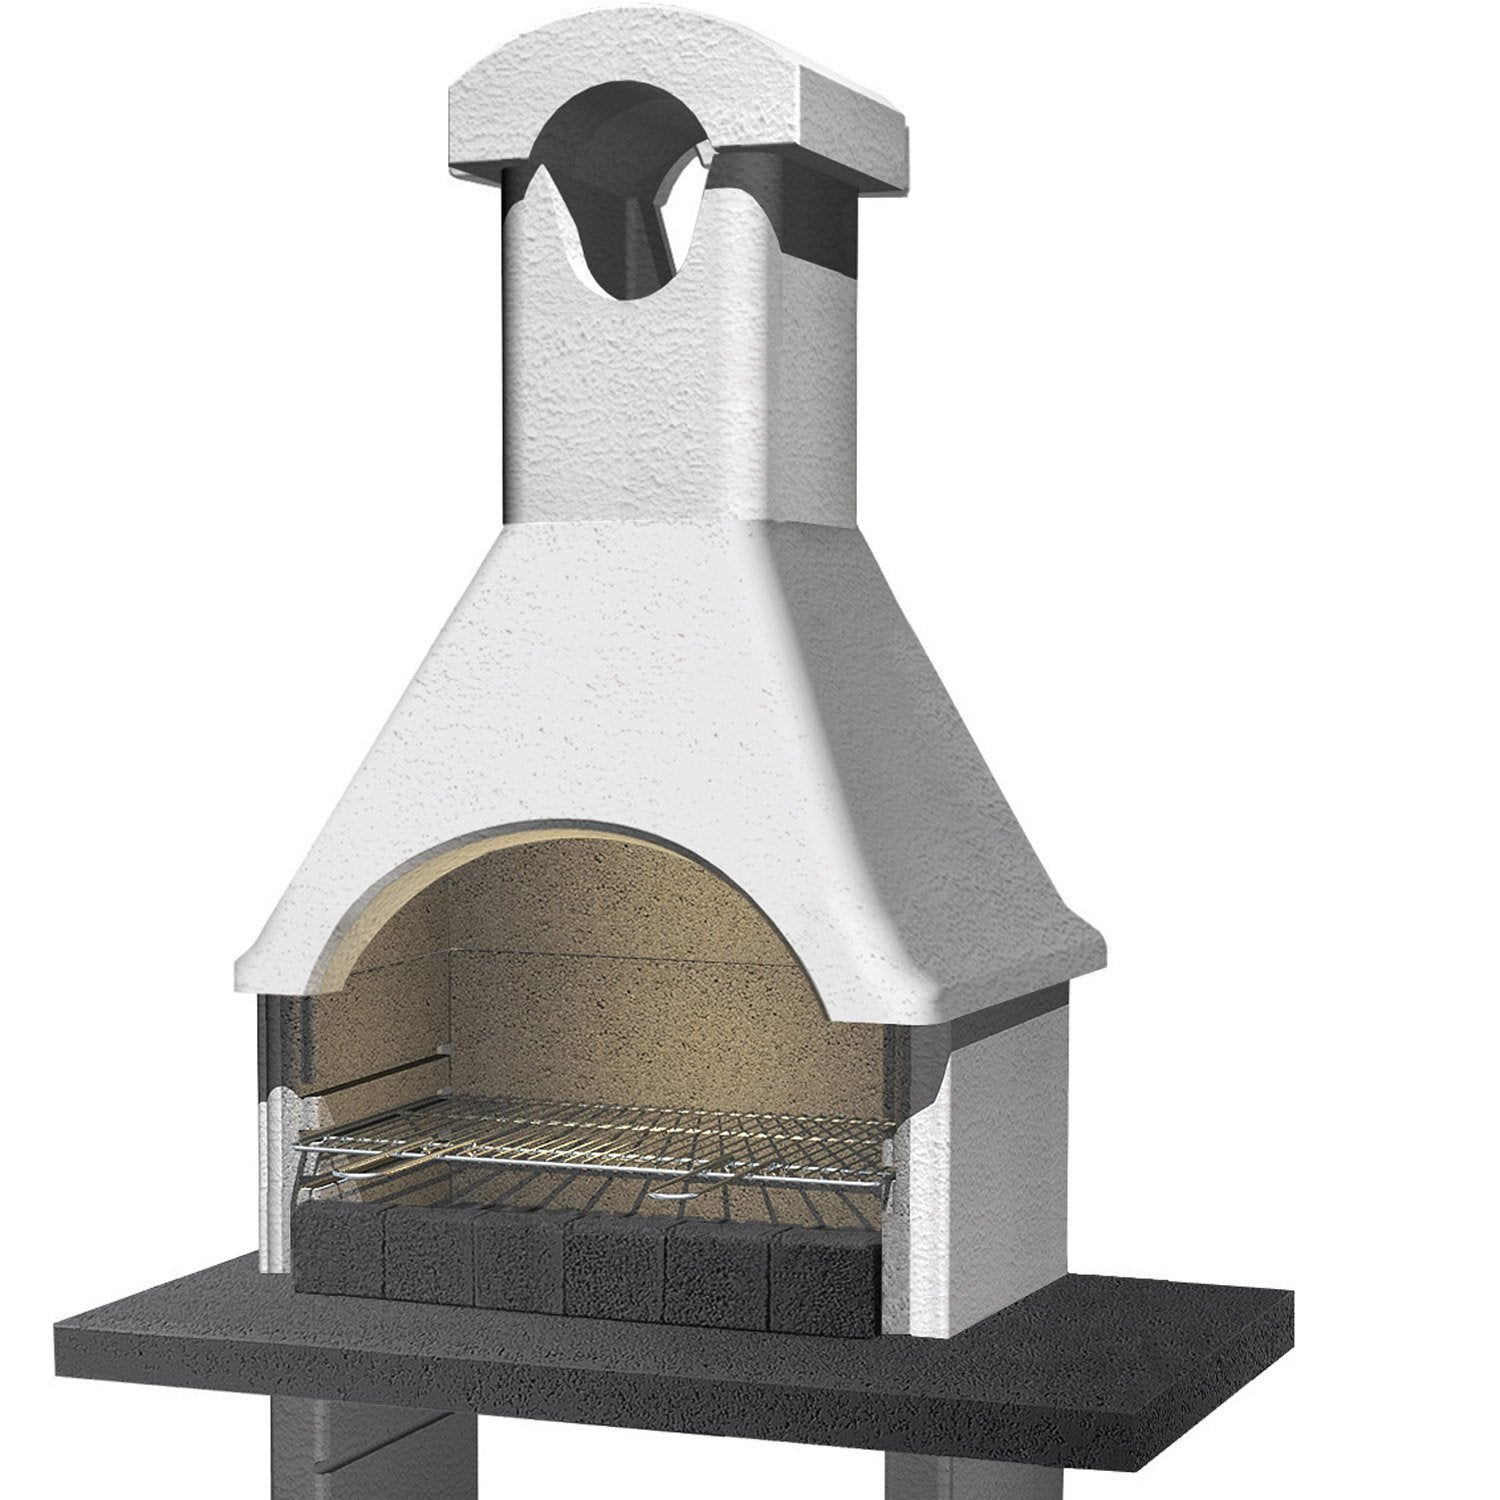 Barbecue ginevra l 64 x p 114 x h 210 cm leroy merlin - Barbecue leroy merlin ...